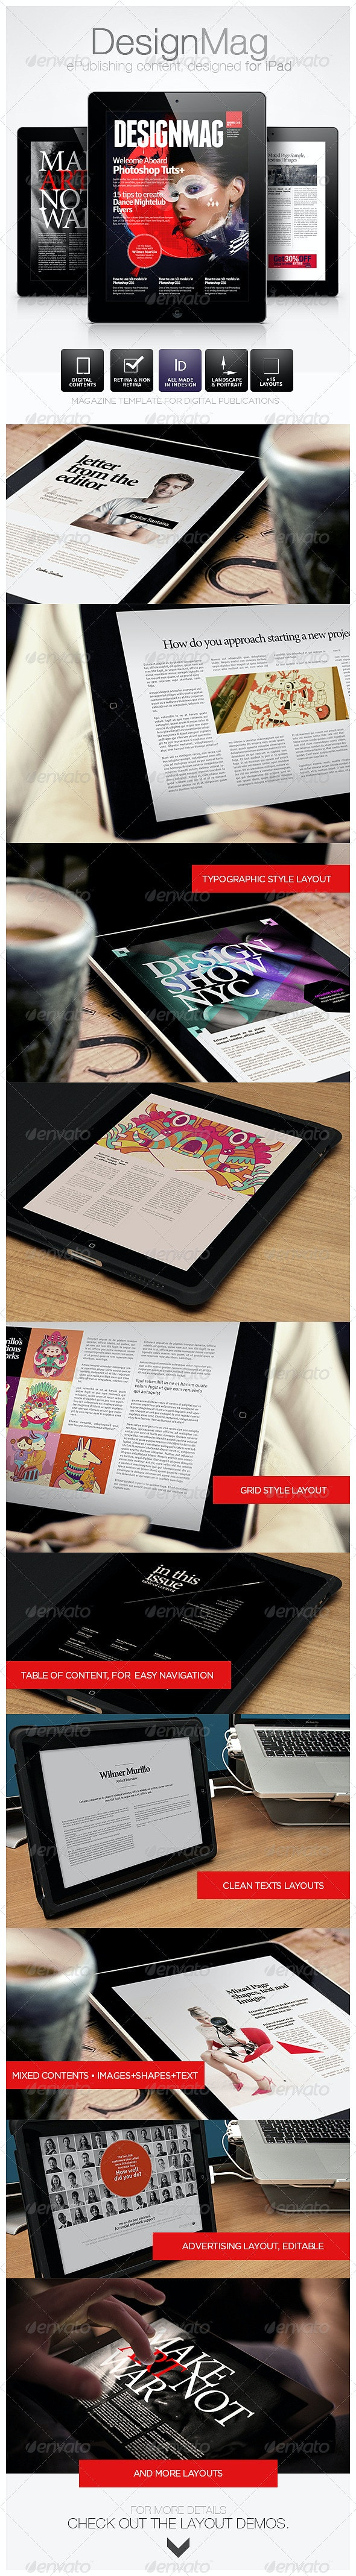 DesignMag iPad Magazine - Digital Magazines ePublishing